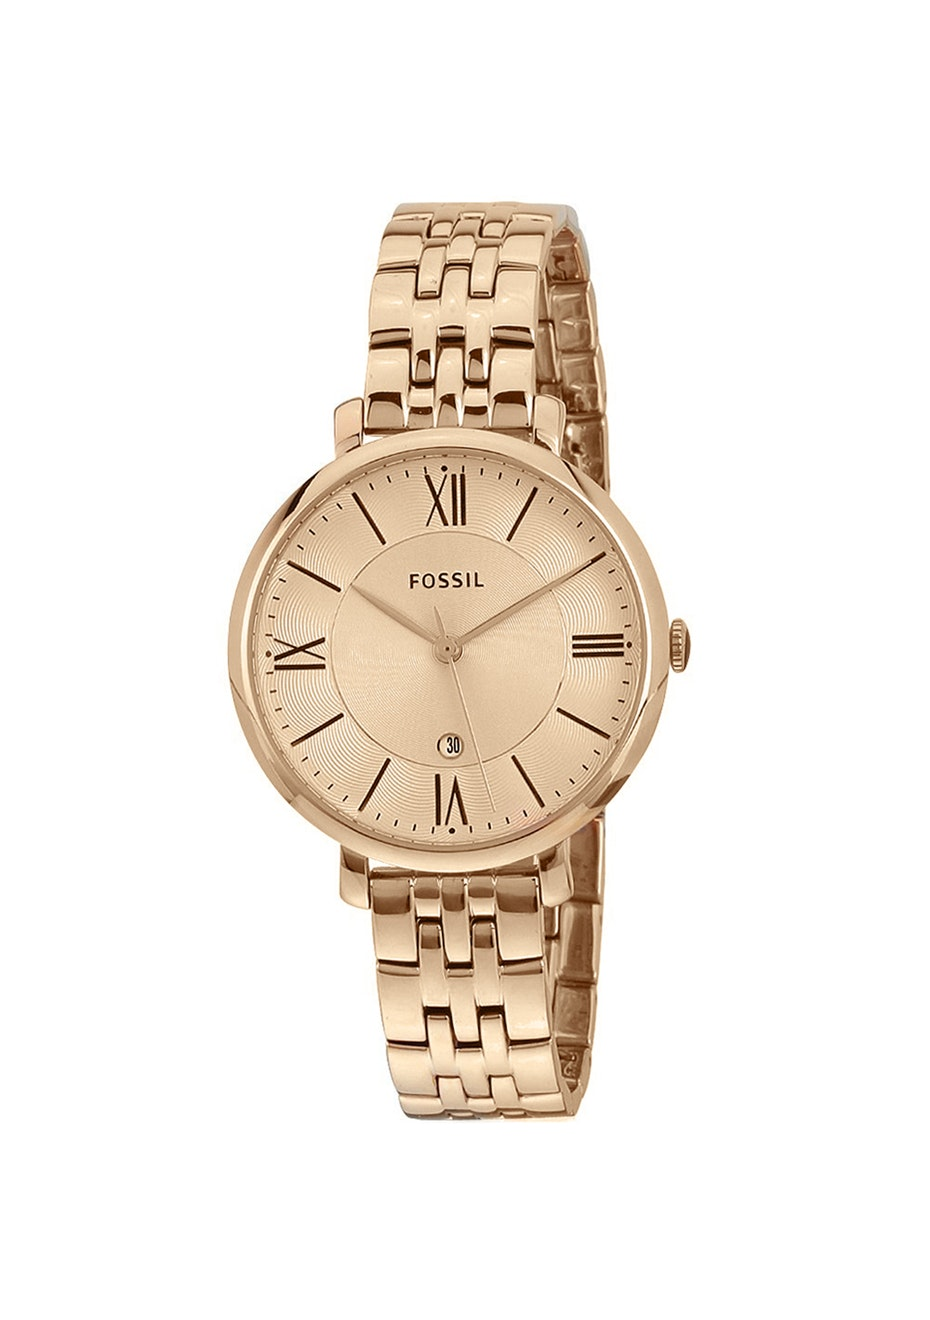 Fossil Women's Jacqueline - Rose Gold/Rose Gold